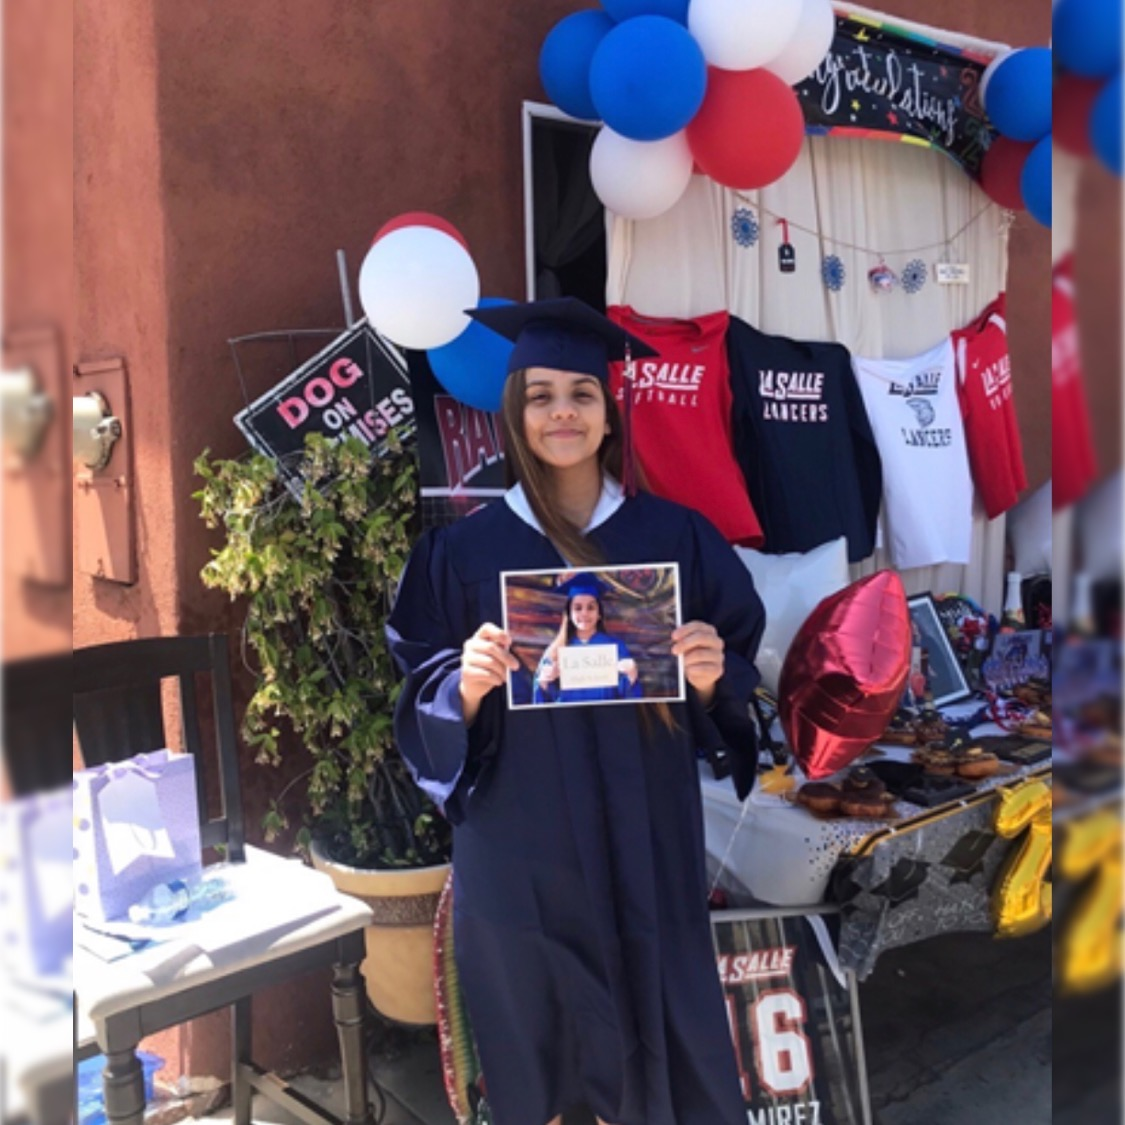 Congrats to Crystal Ramirez🌺 from our #ClassParksTeenProgram at Lincoln Heights Recreation Center 🥳👩🎓! Crystal graduated from LA Salle High School and will be attending #GCC Where she will play basketball 🏀 and volleyball 🏐 ! We're rooting for you! 😊🎊 #ParkProudLA https://t.co/sFOUchLDM5